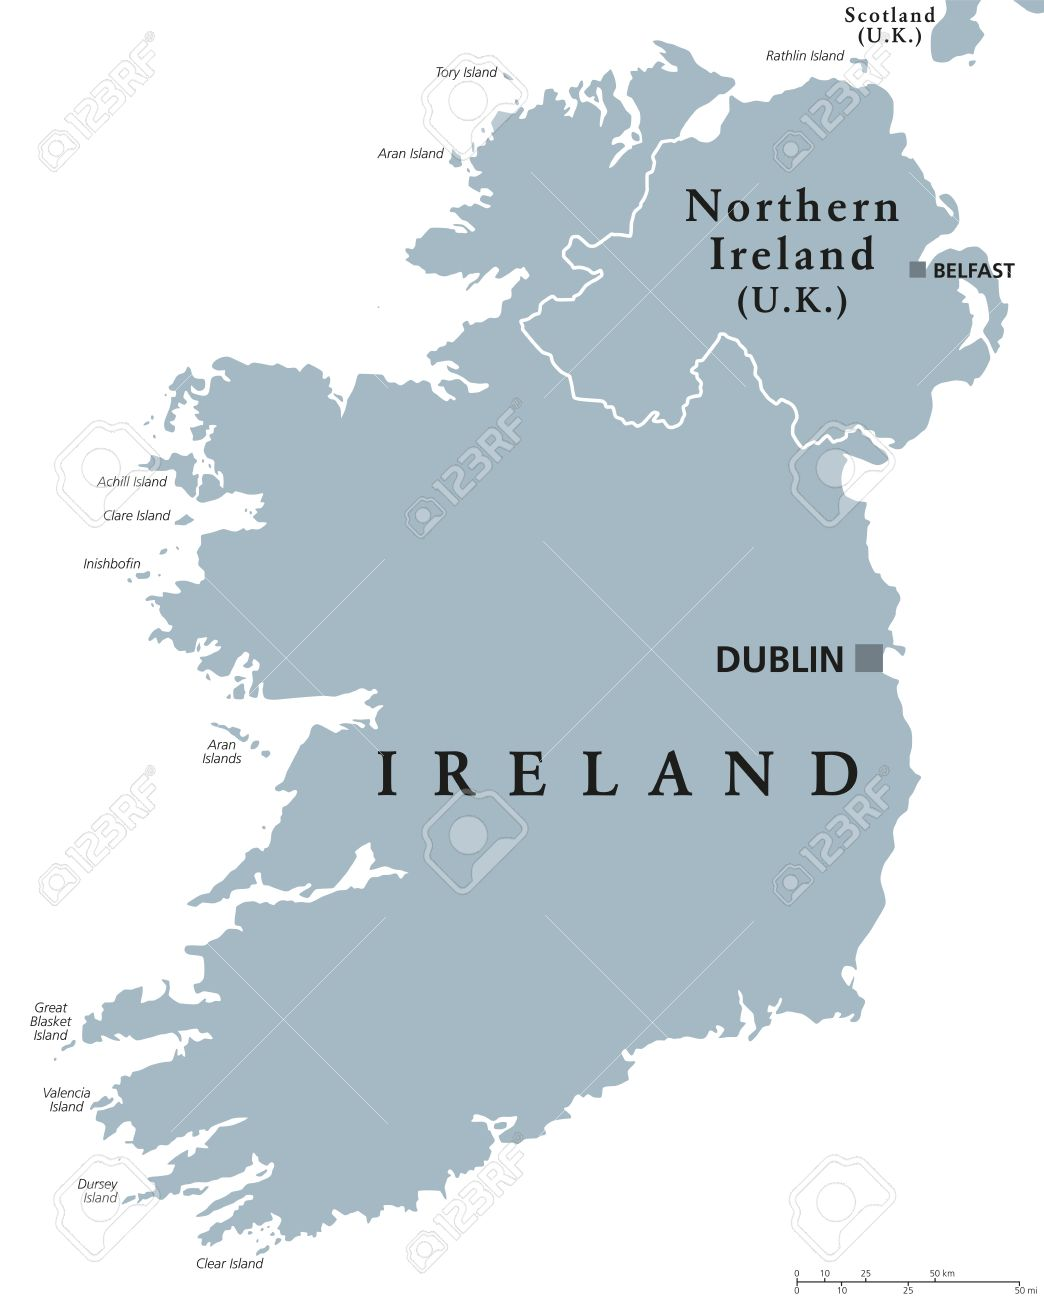 Map Of Ireland Northern Ireland.Republic Of Ireland And Northern Ireland Political Map With Capitals